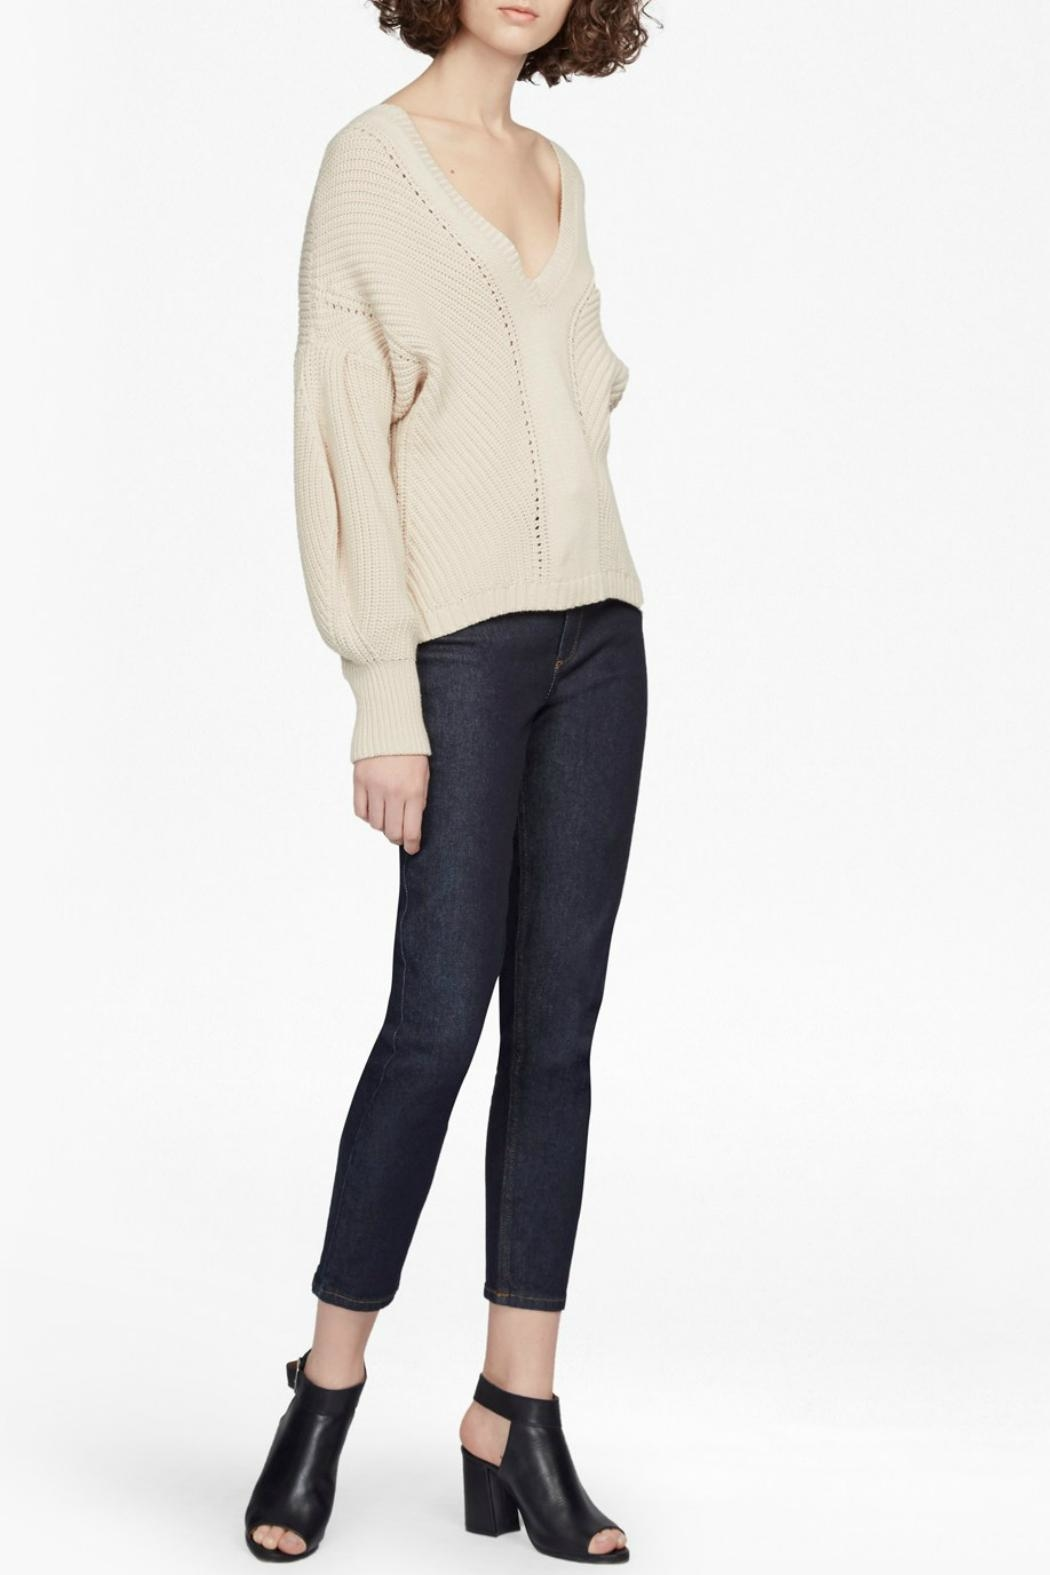 French Connection Millie Knit Sweater - Back Cropped Image